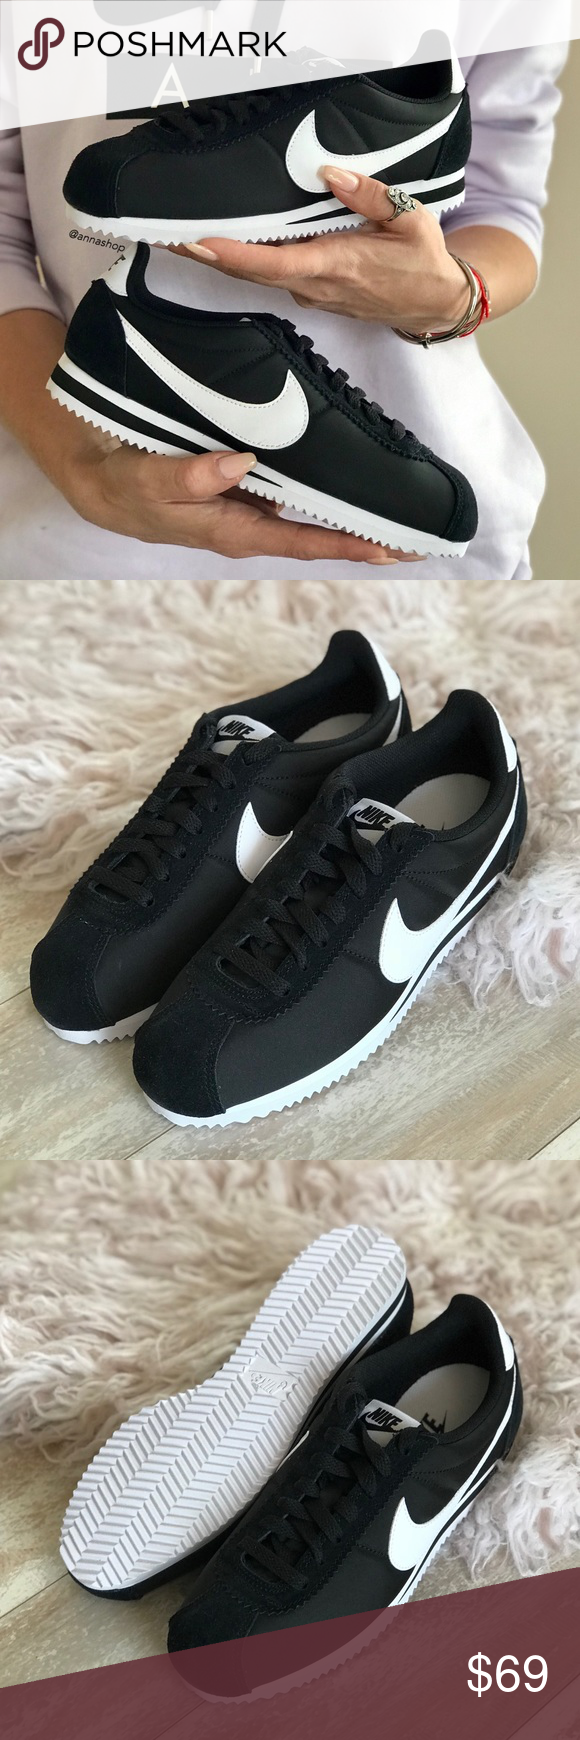 pretty nice 3571b 72971 NWT🖤Nike Cortez neylon black Brand new with box, no lid.Price is